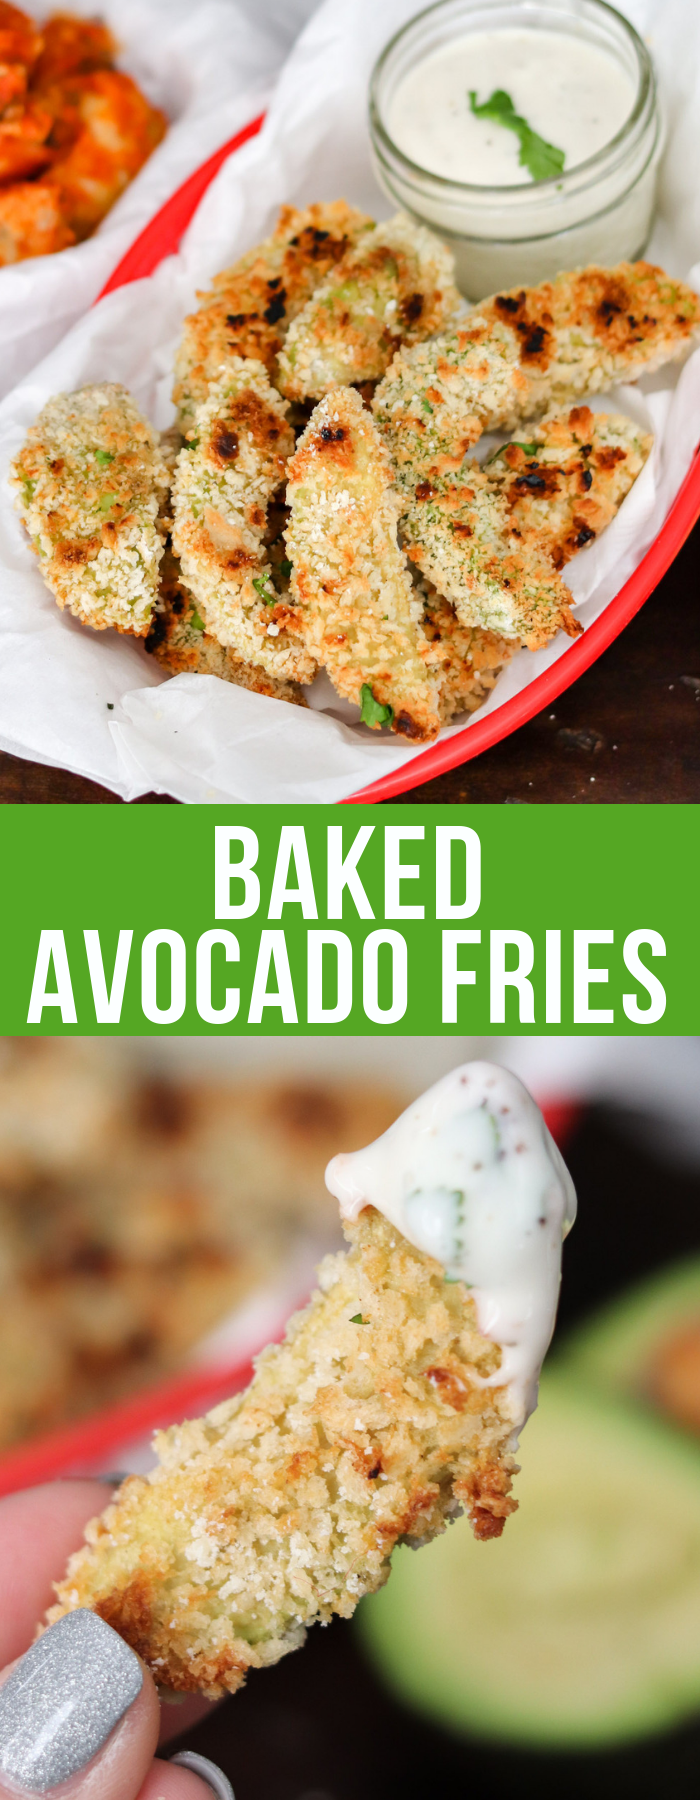 Baked avocado fries are creamy, crunchy, and healthy without any oily mess! They're the perfect health conscious snack, with only a handful of ingredients!